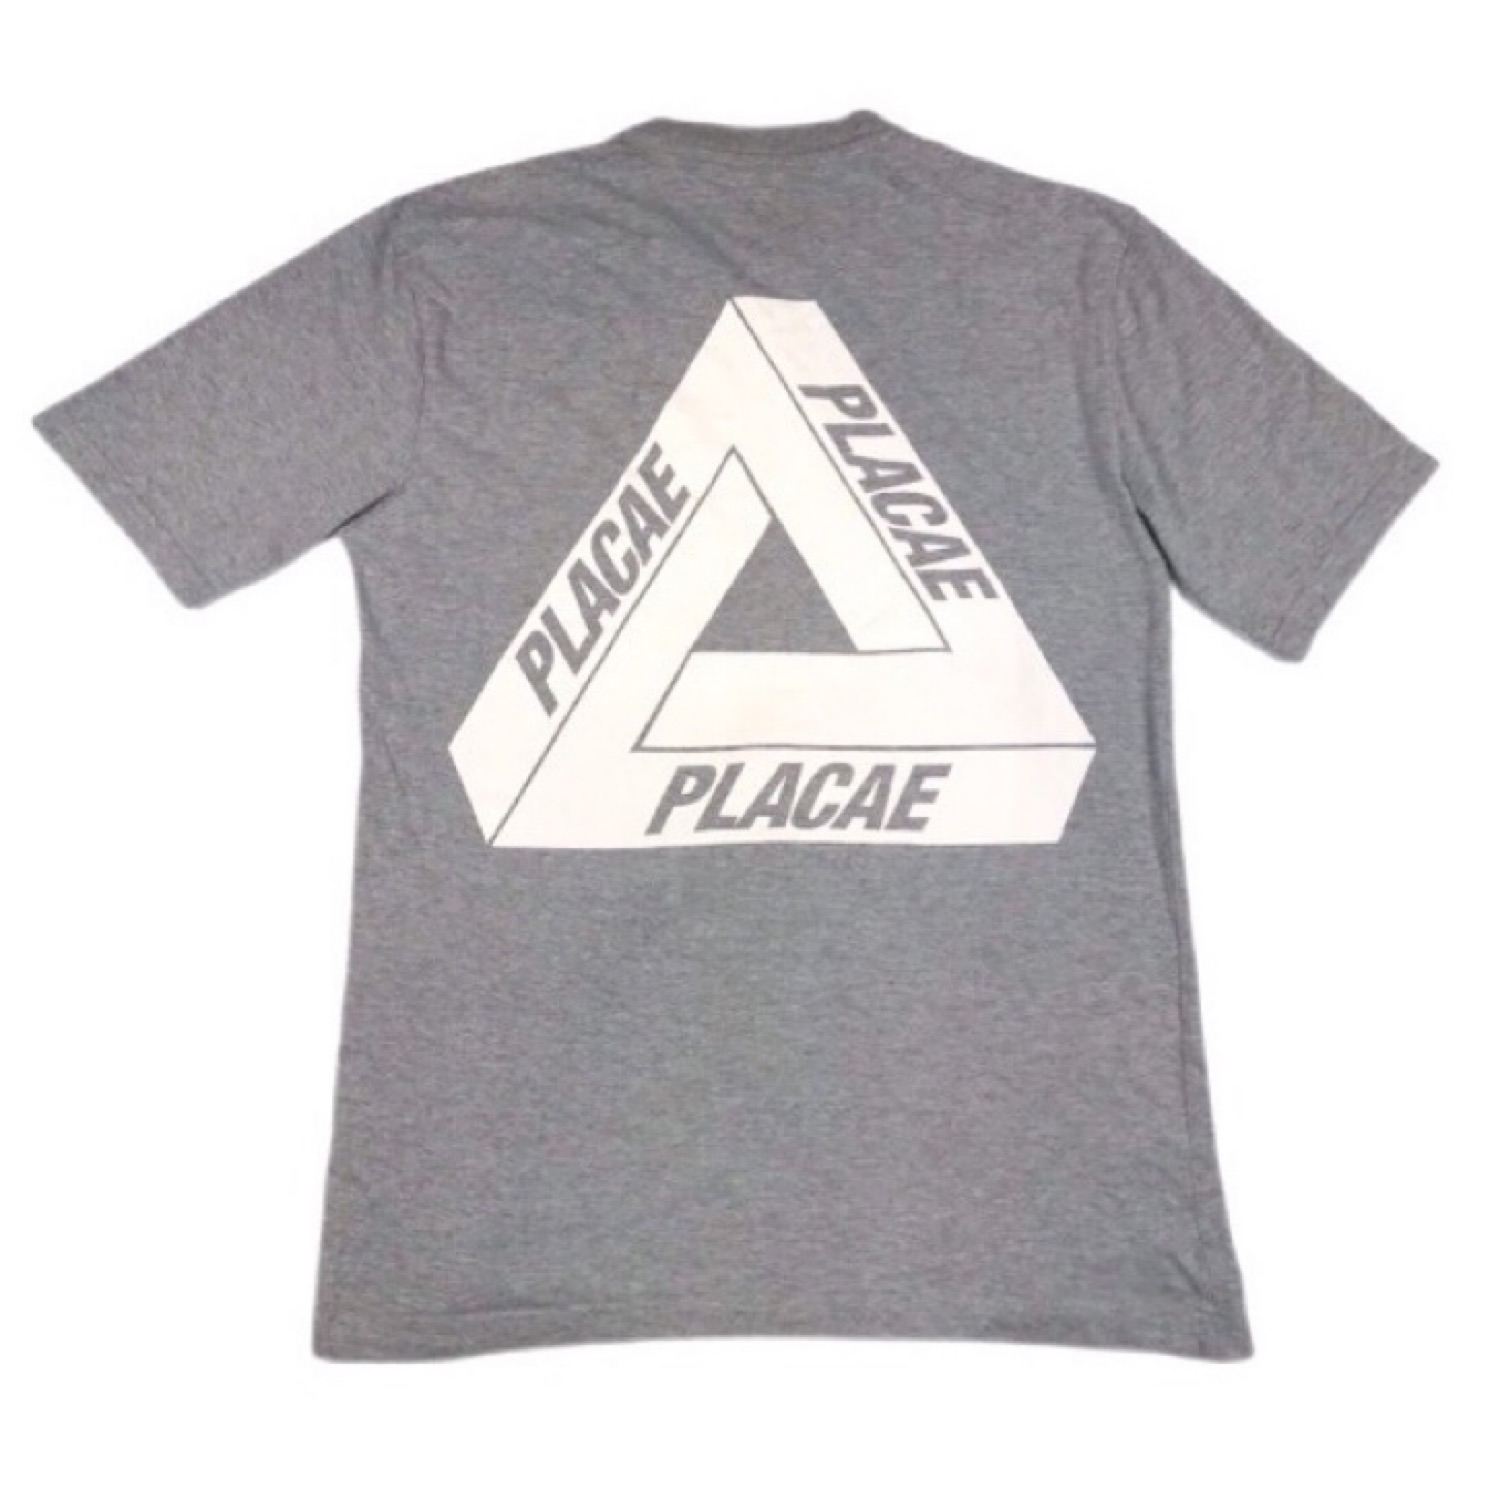 Palace Placae T-Shirt